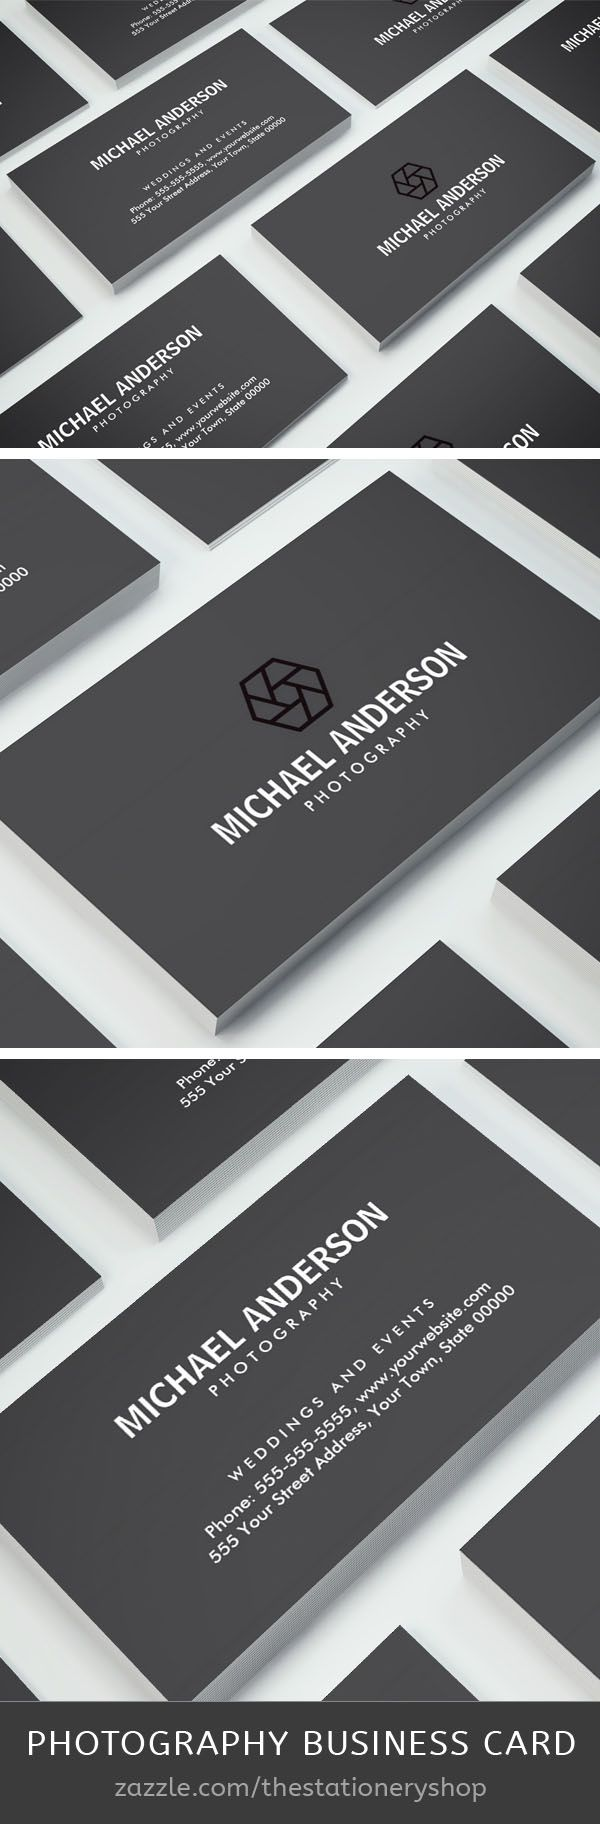 Wedding Photography Business Names: Best 25+ Business Names Ideas On Pinterest